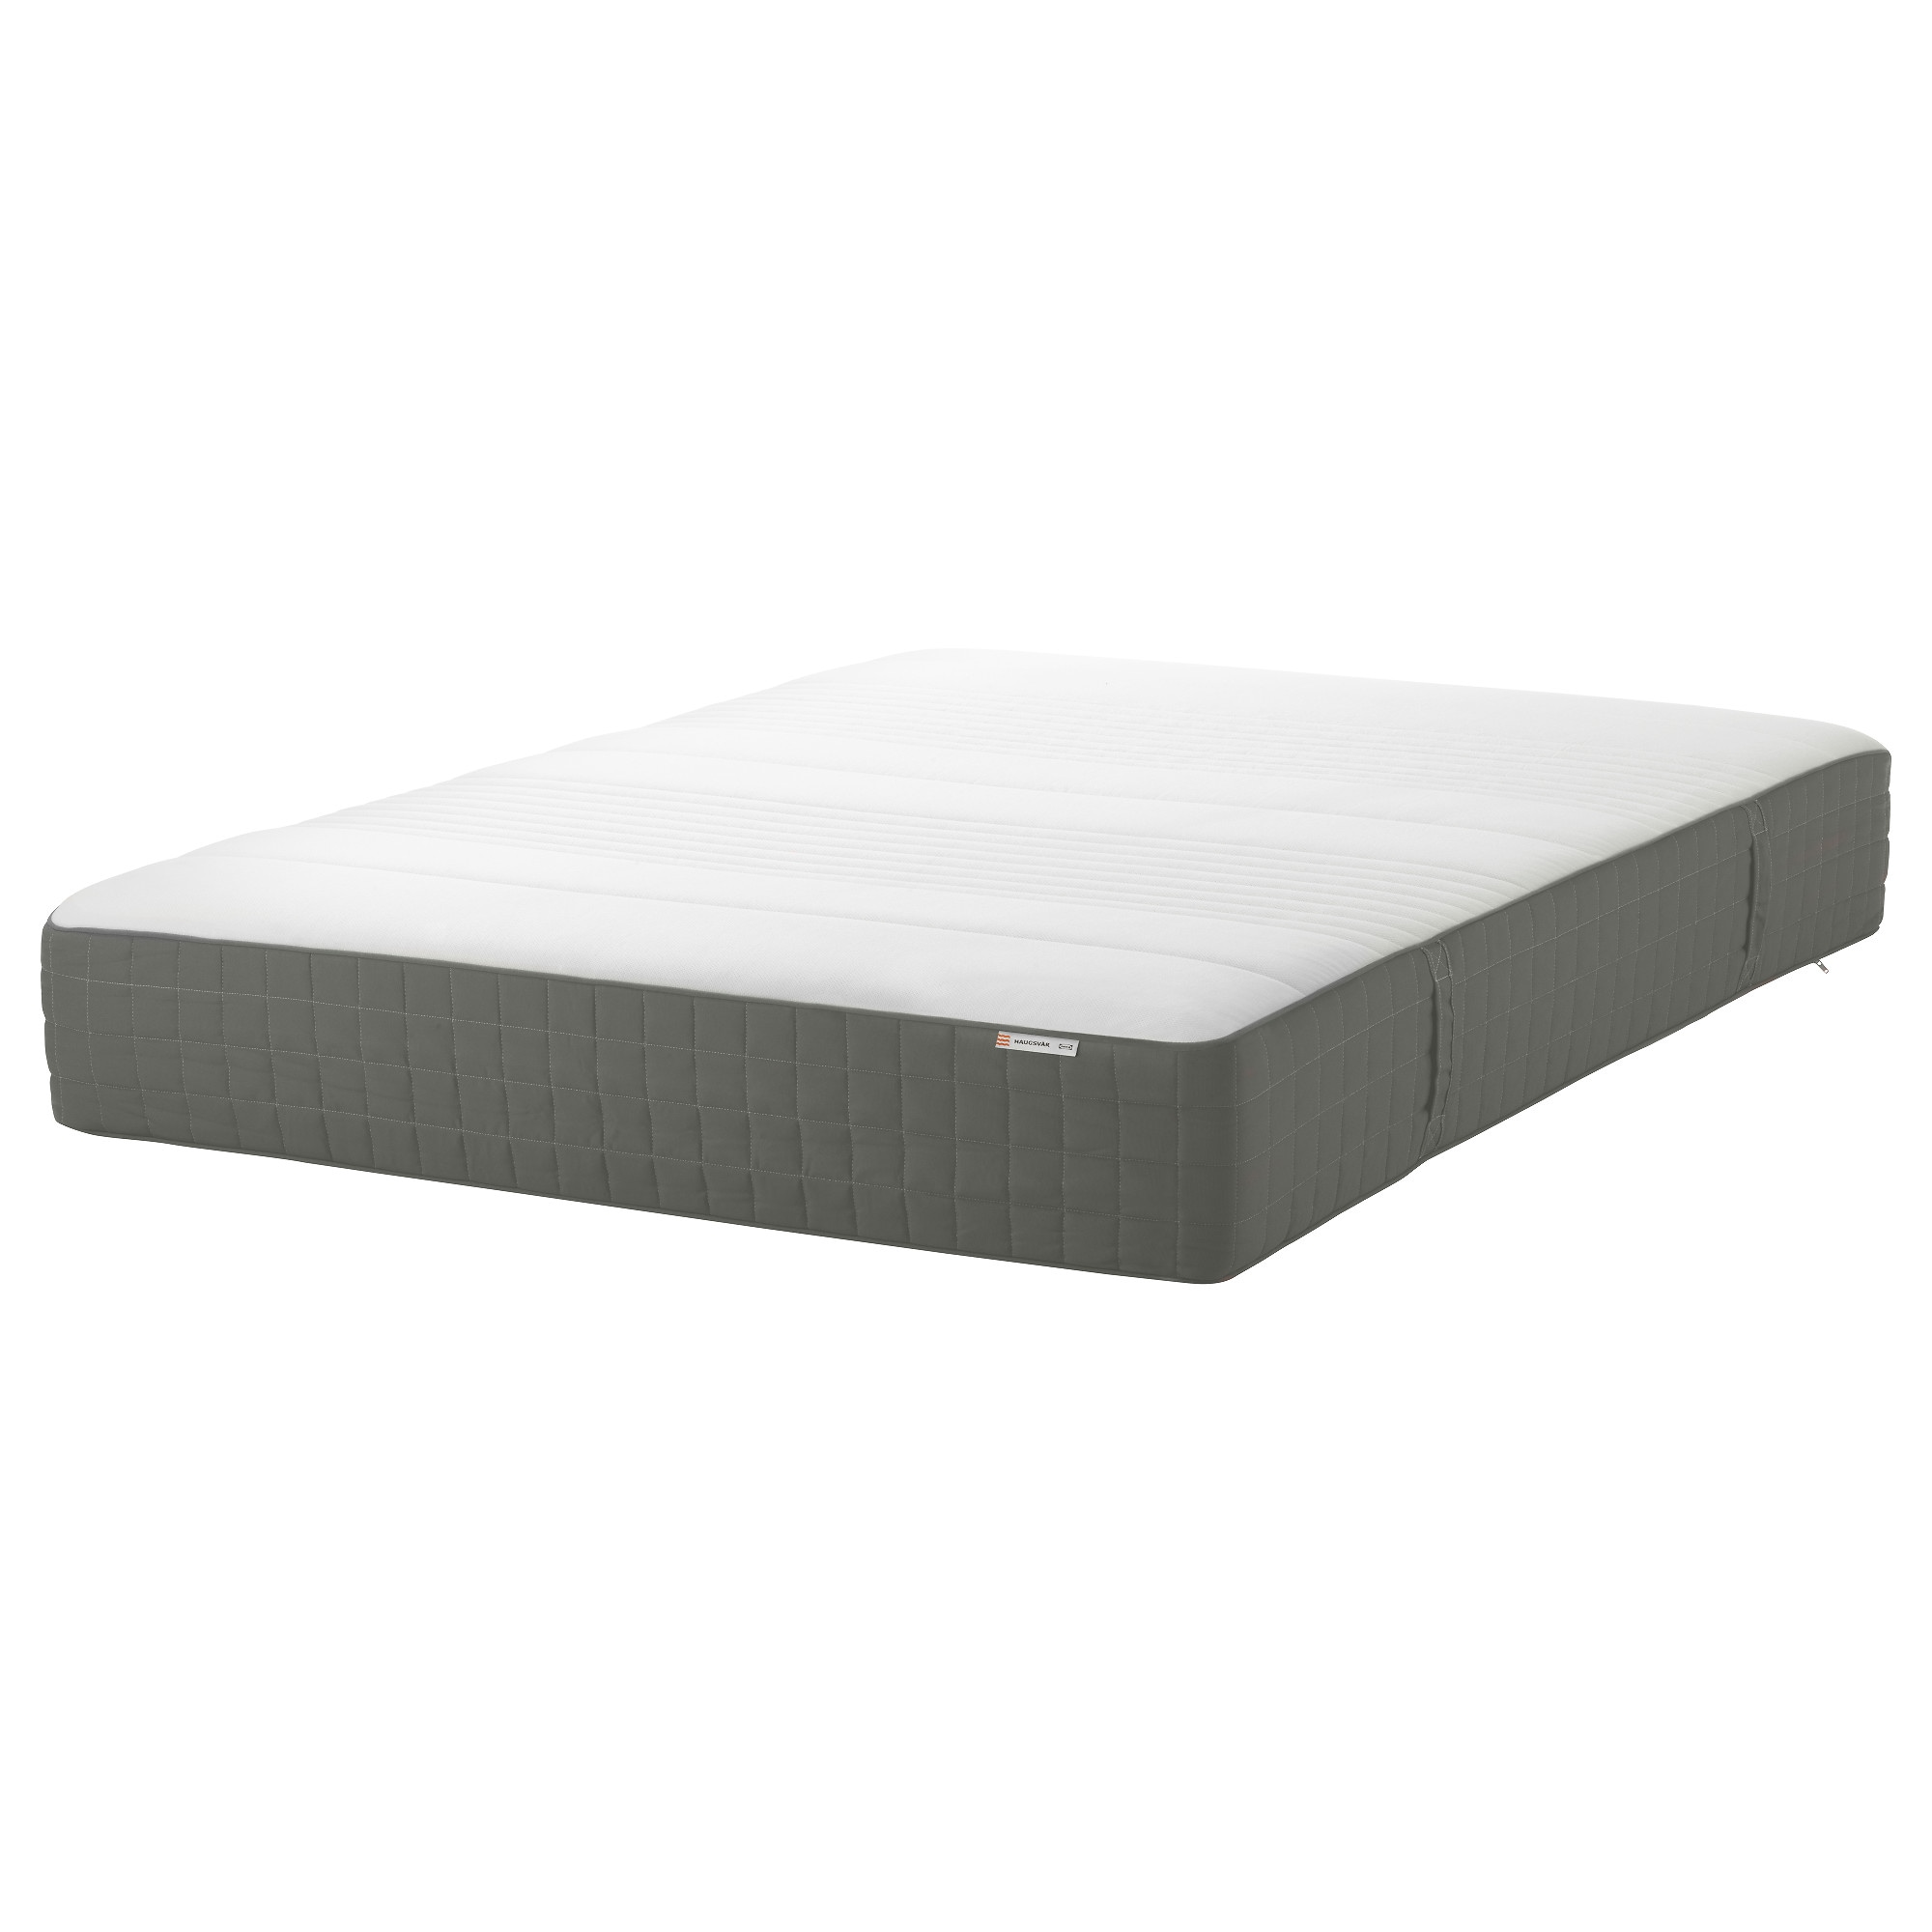 of boxspring xfile bed pics size furniture inspiring double king inches trend unbelievable ikea mattresses feet and amazing alaskan topper popular fresh in mattress